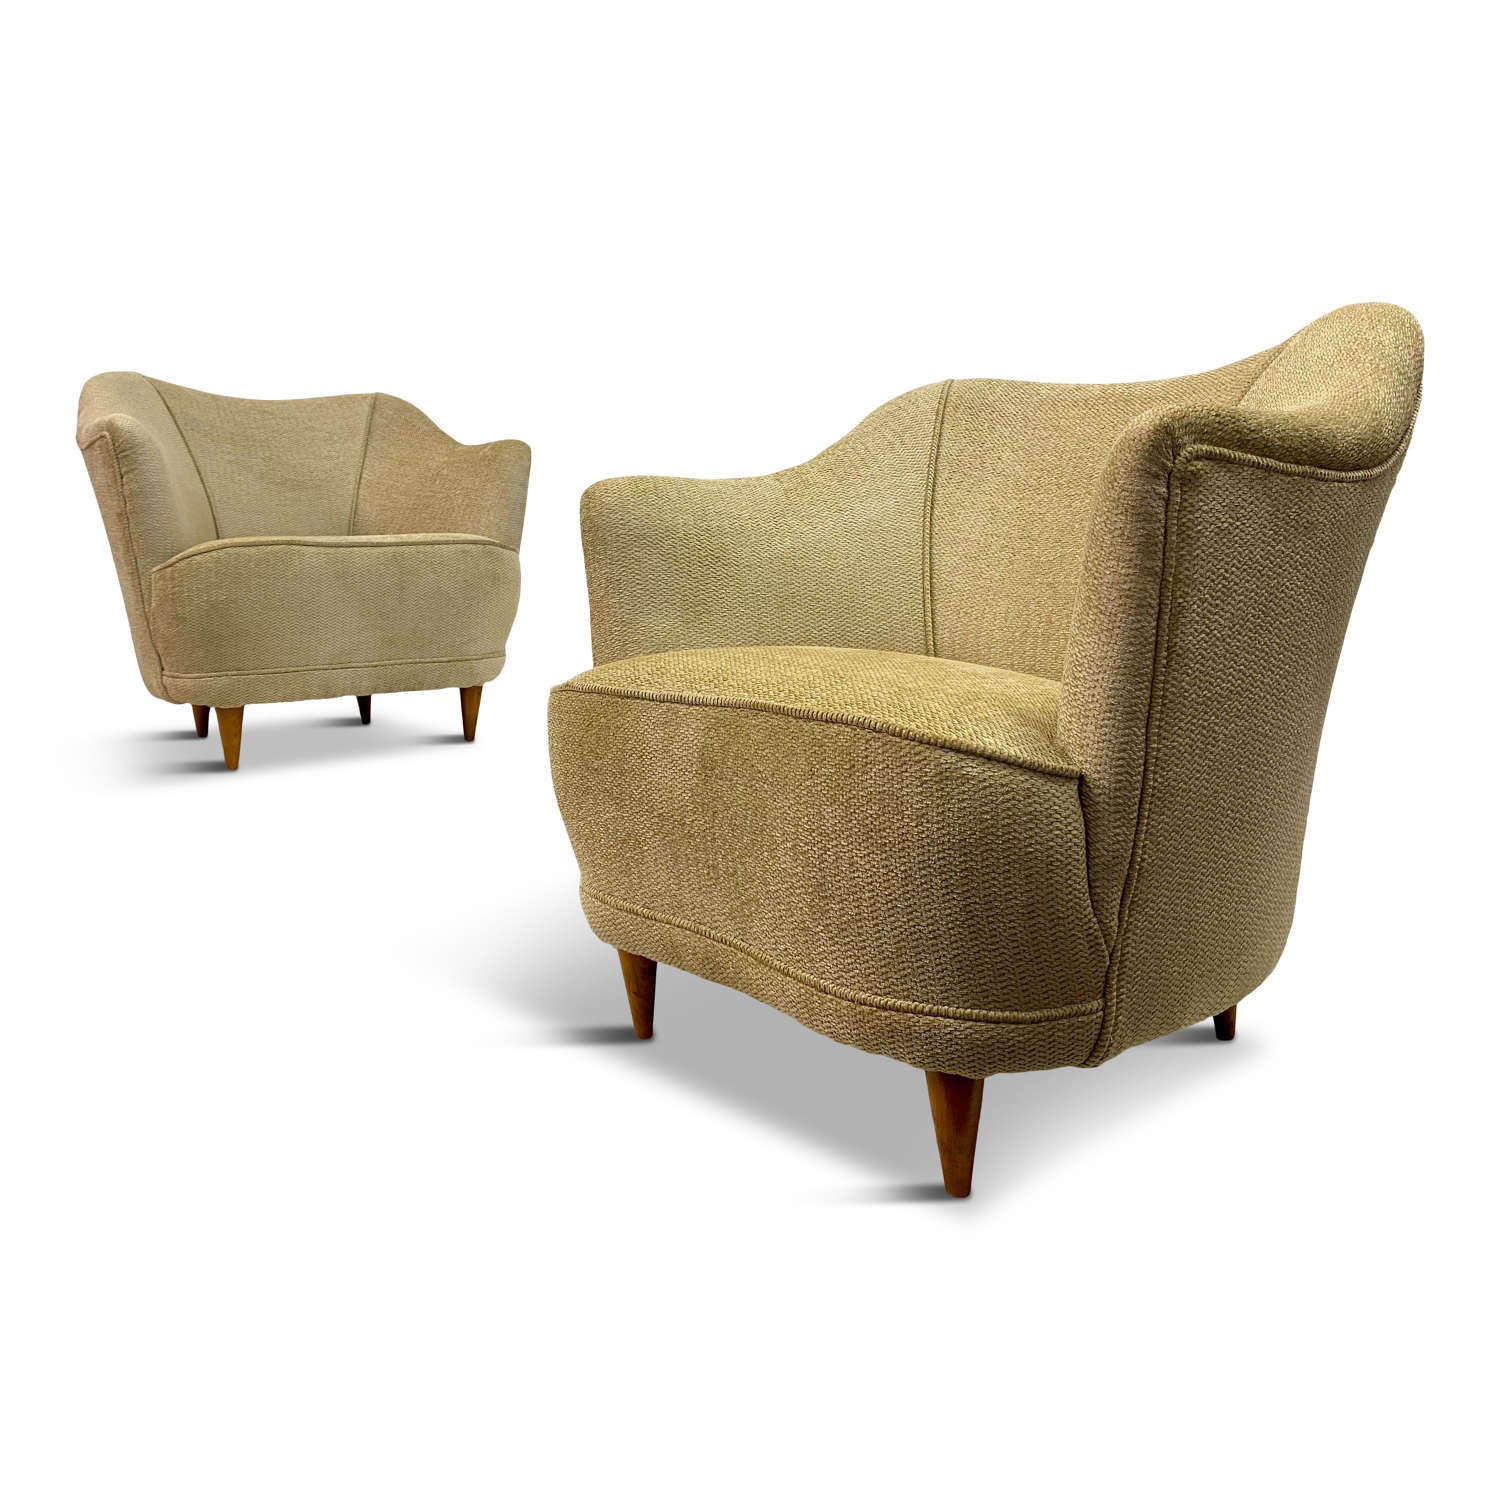 Pair of 1950s Italian Club Armchairs